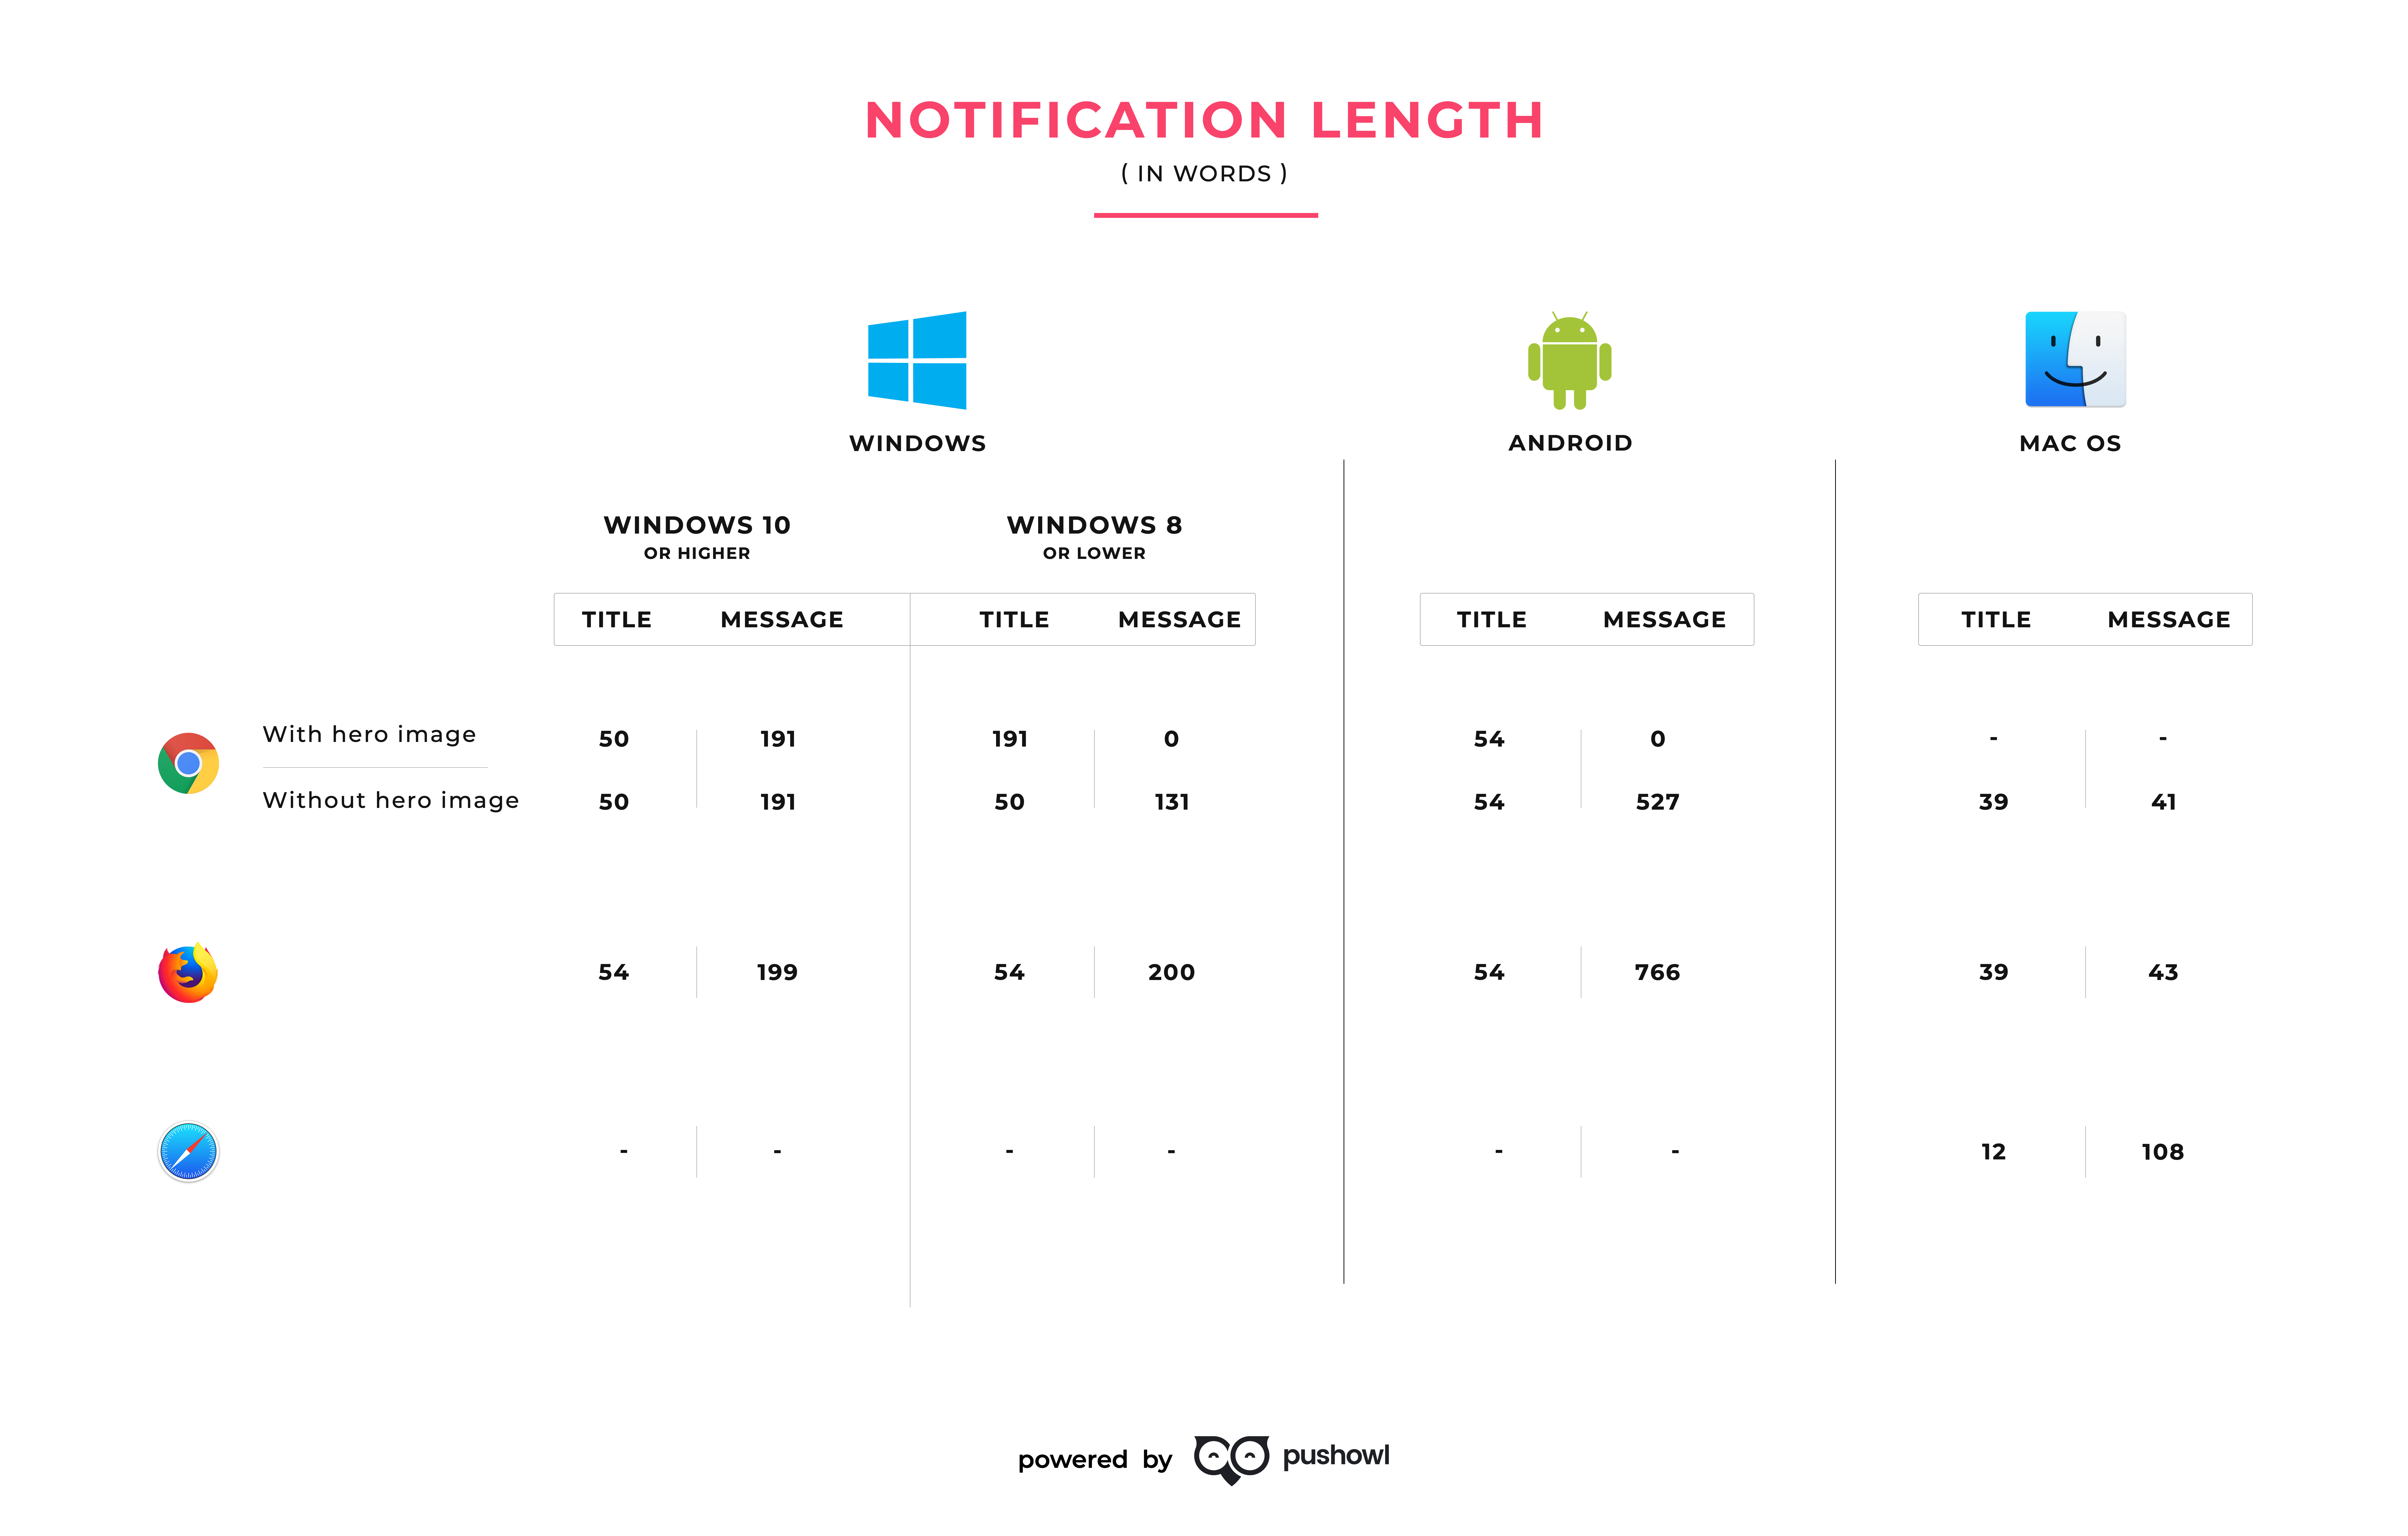 push notification length for mac, android, and windows 2019